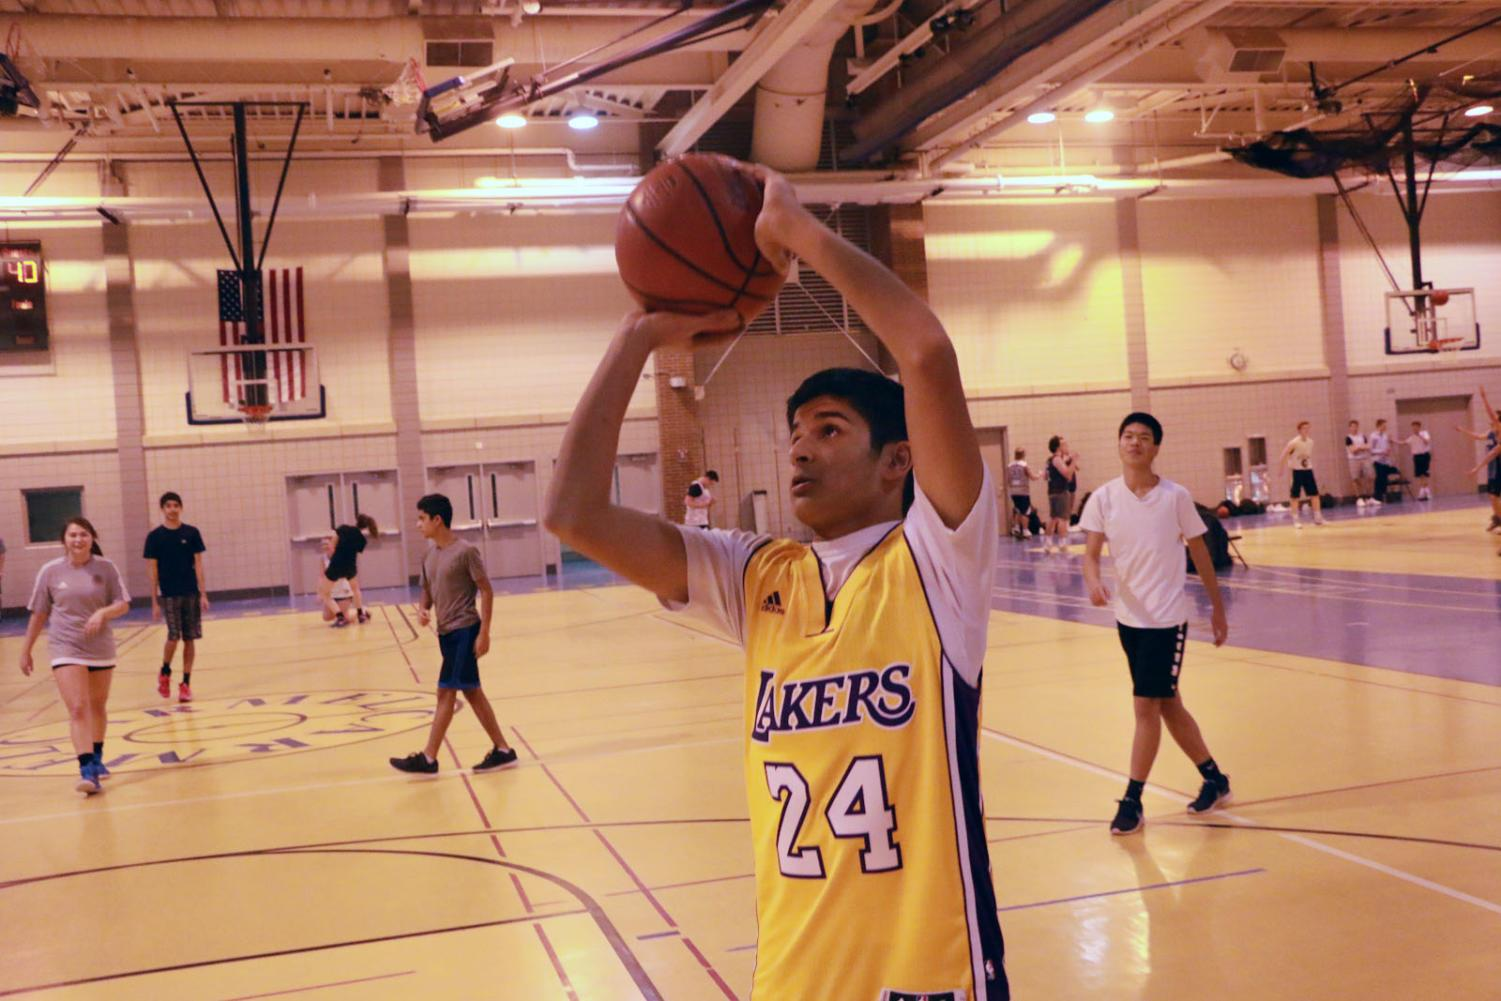 Rohil Senapati, intramural player and sophomore, prepares to shoot a ball during an intramural game.